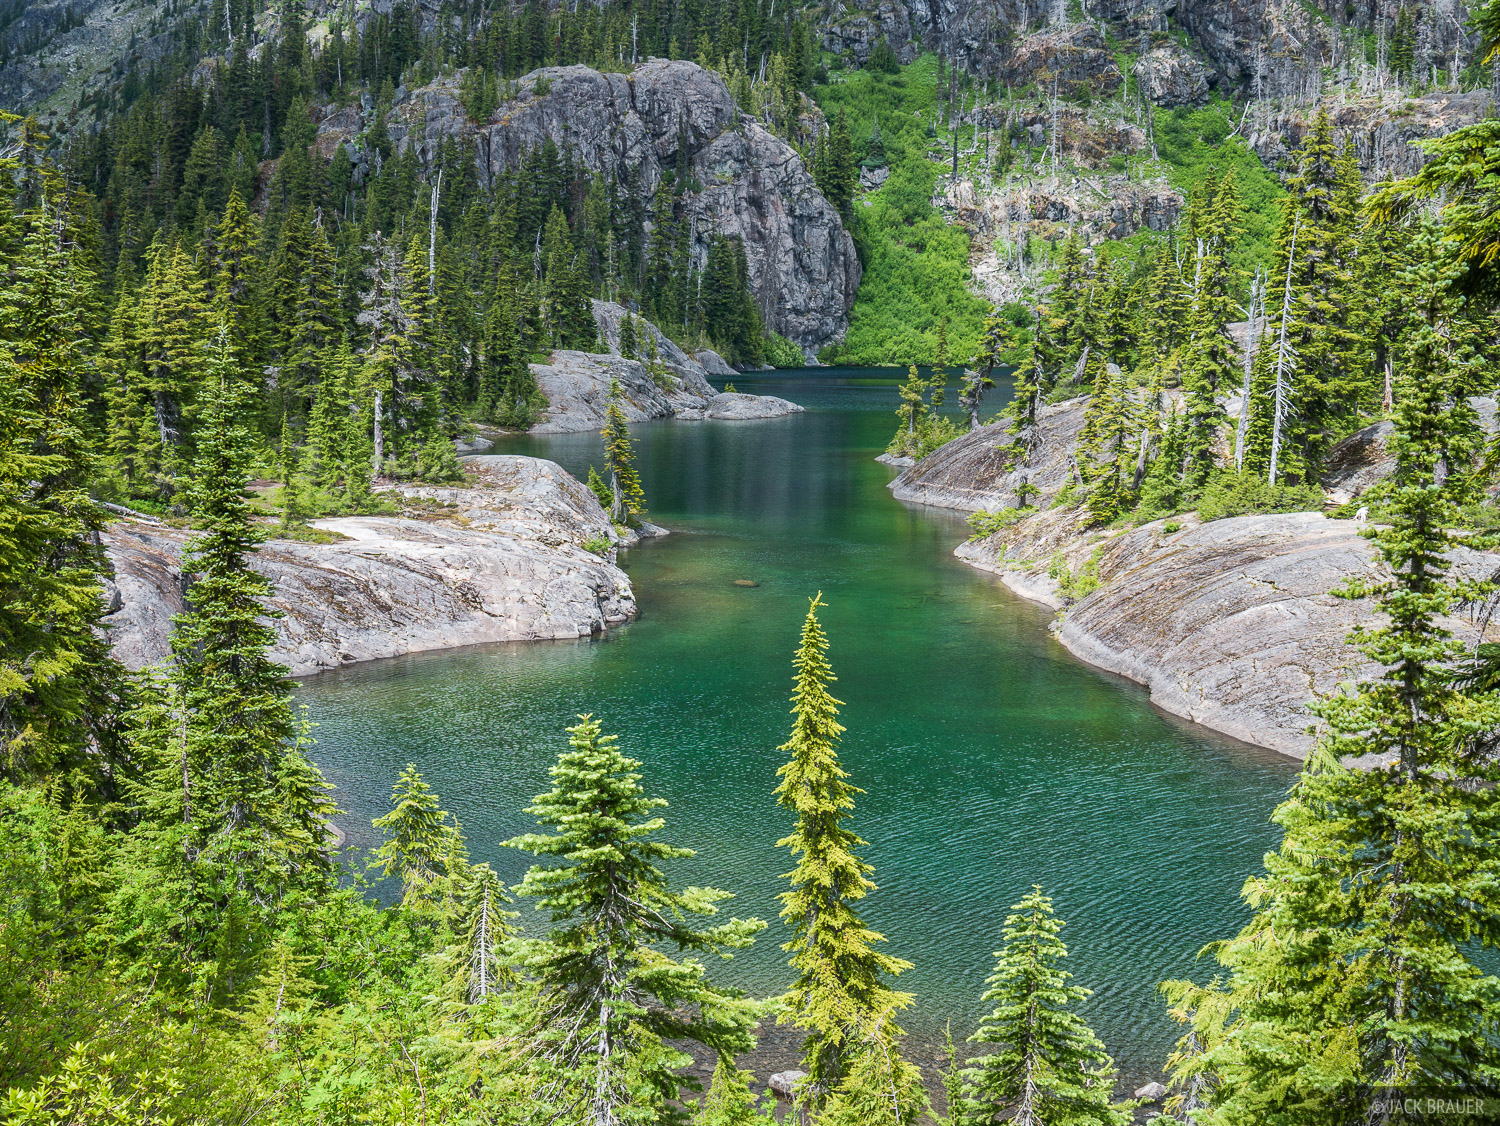 A kaleidoscope of greens at Spectacle Lake.